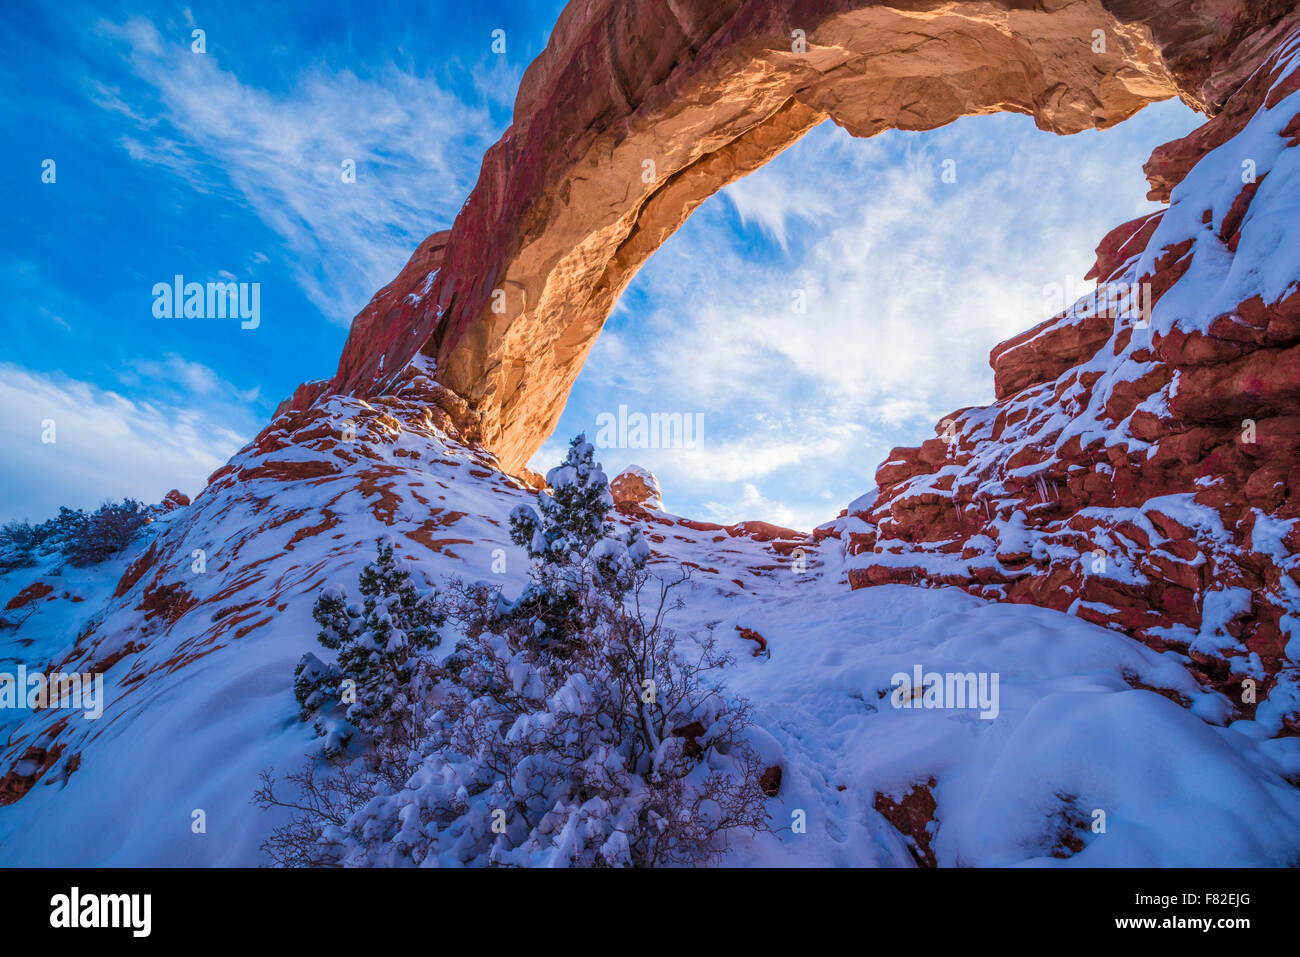 Snowy sunset at North Window, Arches National Park, Utah Windows Section - Stock Image